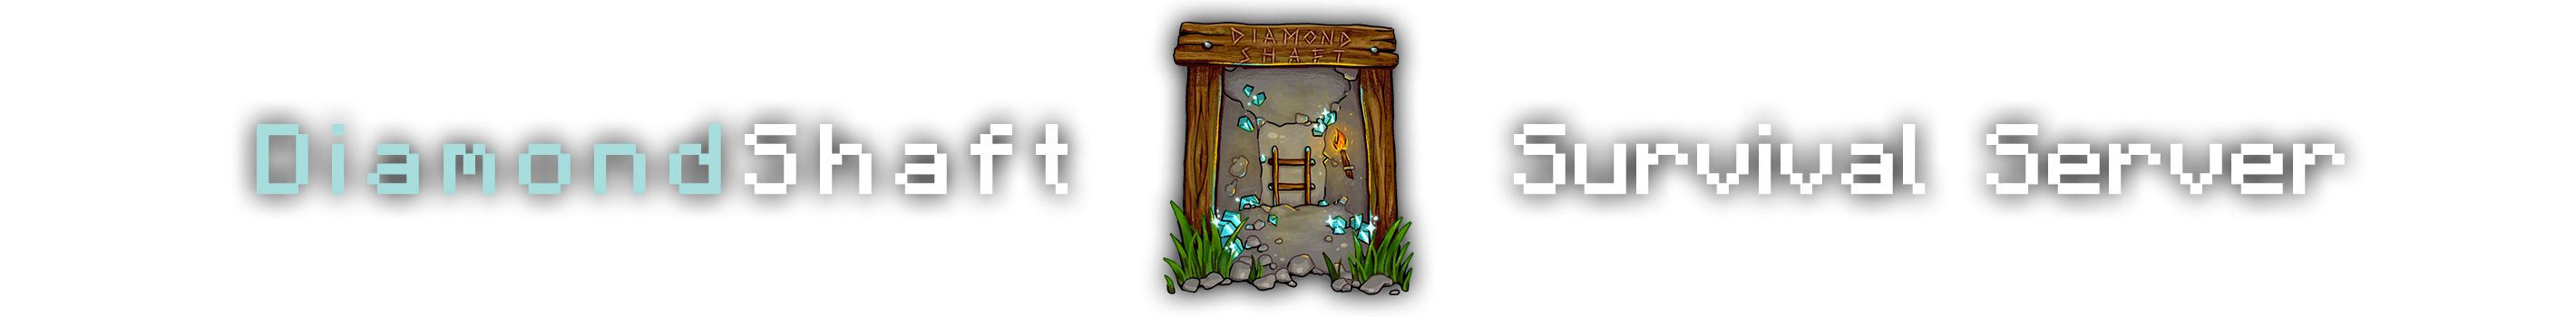 Diamond Shaft